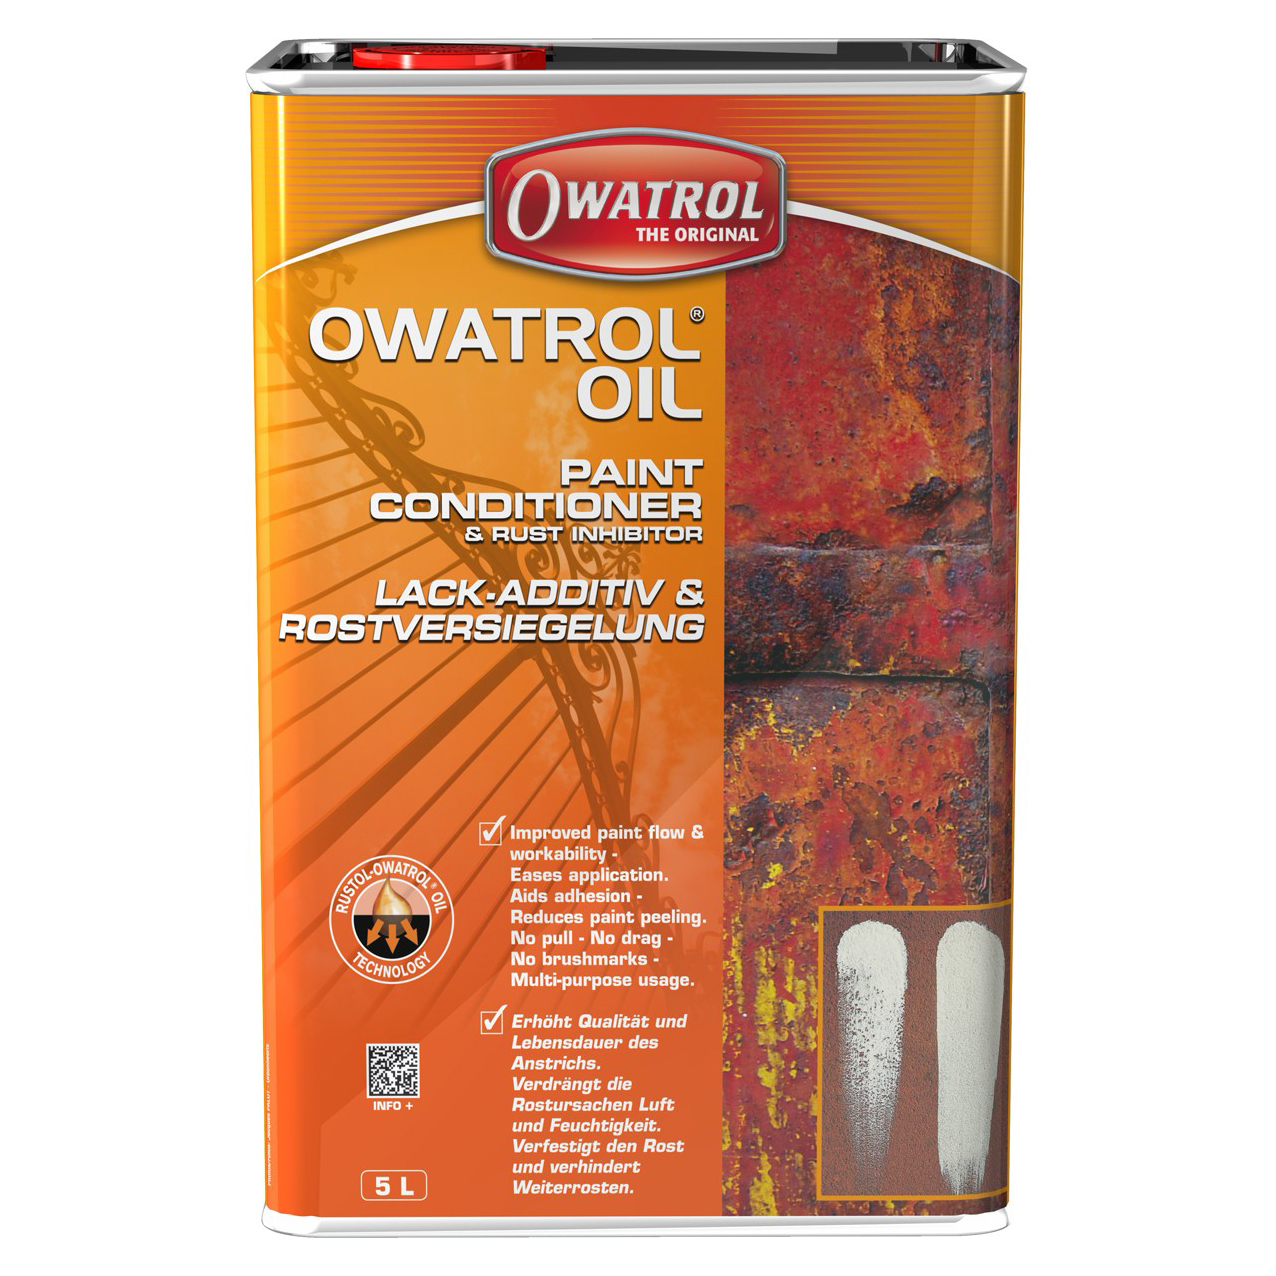 Owatrol Oil Paint Conditioner